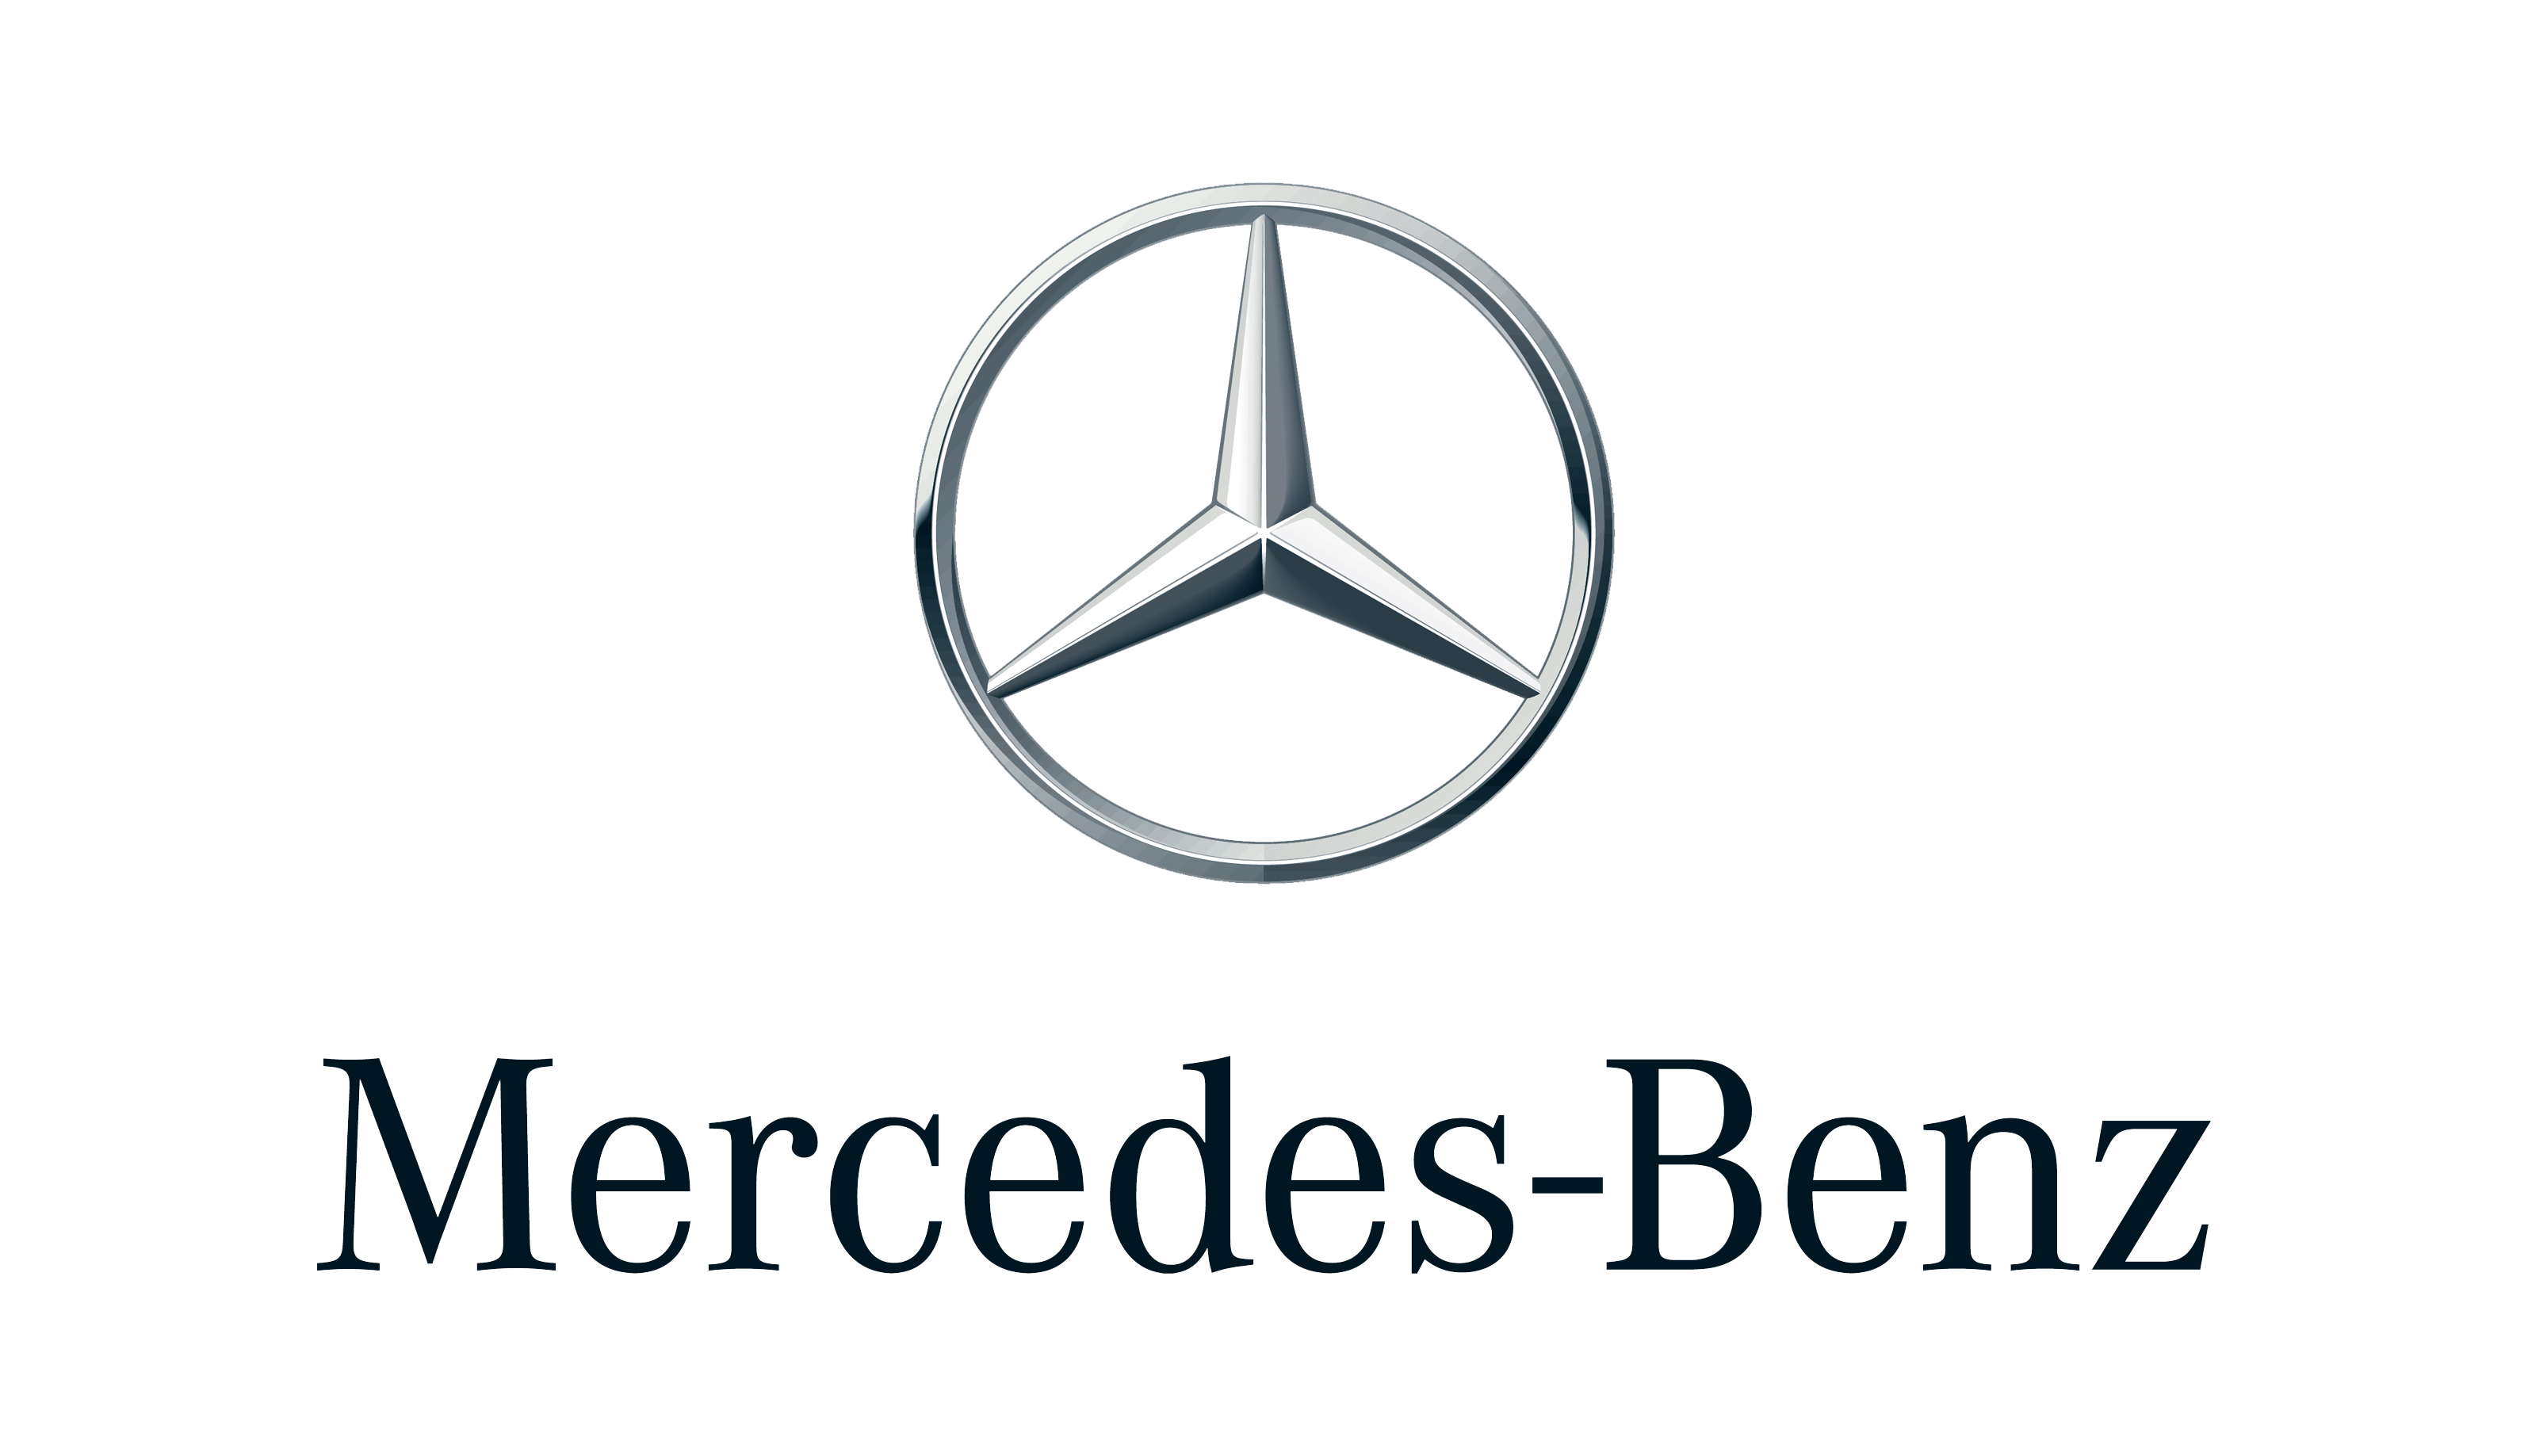 Mercedes-Benz-logo-2011